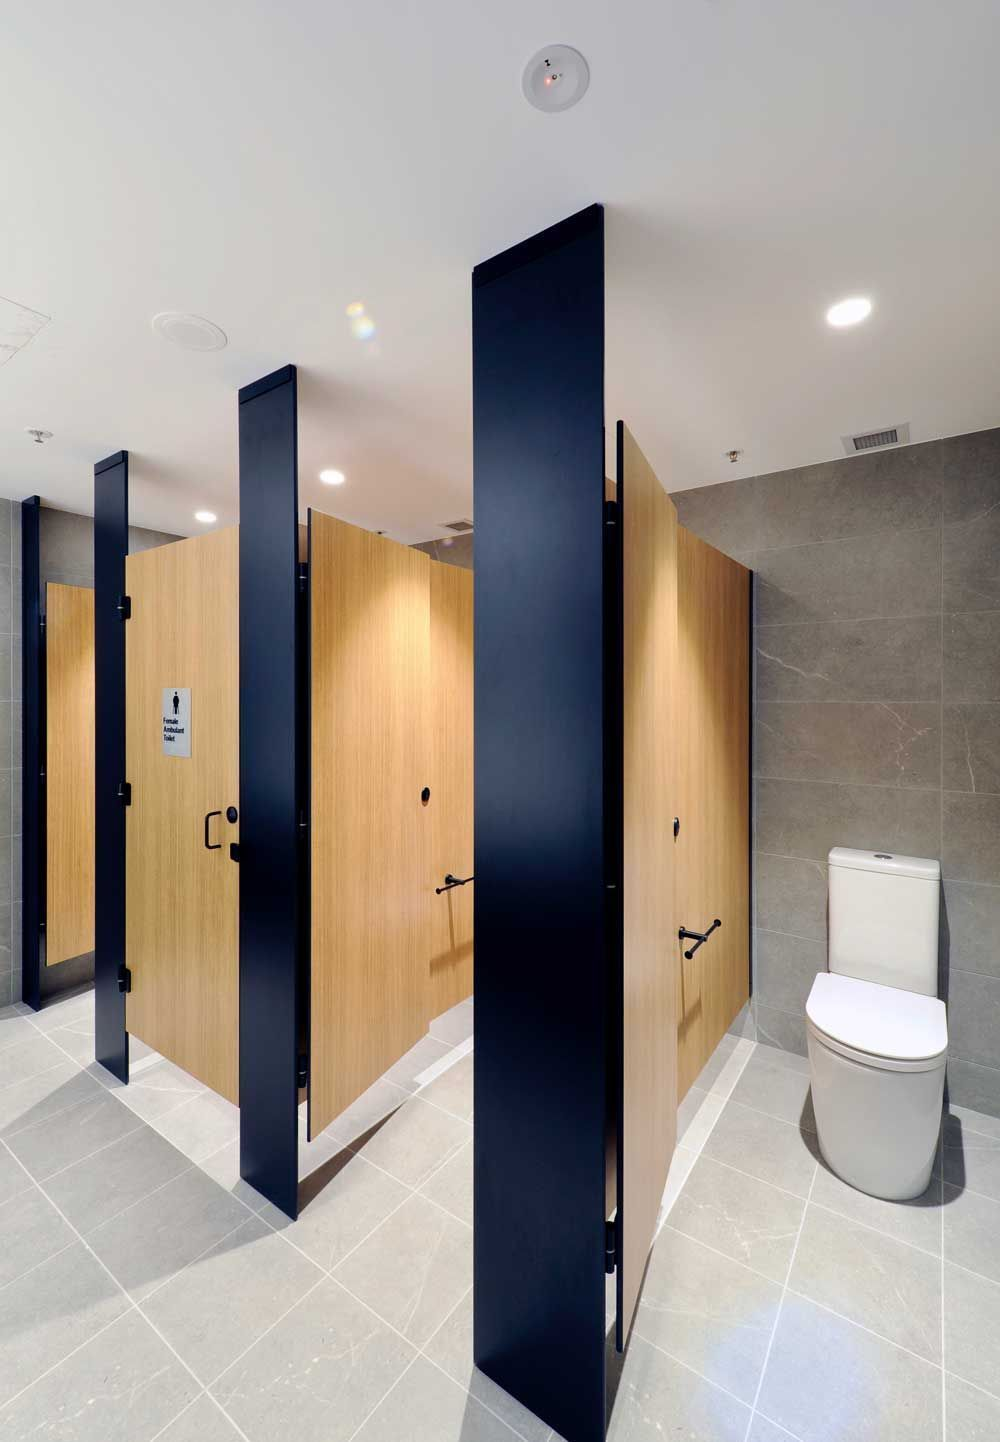 One Of Tpi S Latest Projects Floor Mounted Ceiling Fixed Design With Black Powder Coated Door Furniture Washroom Design Public Restroom Design Toilet Design